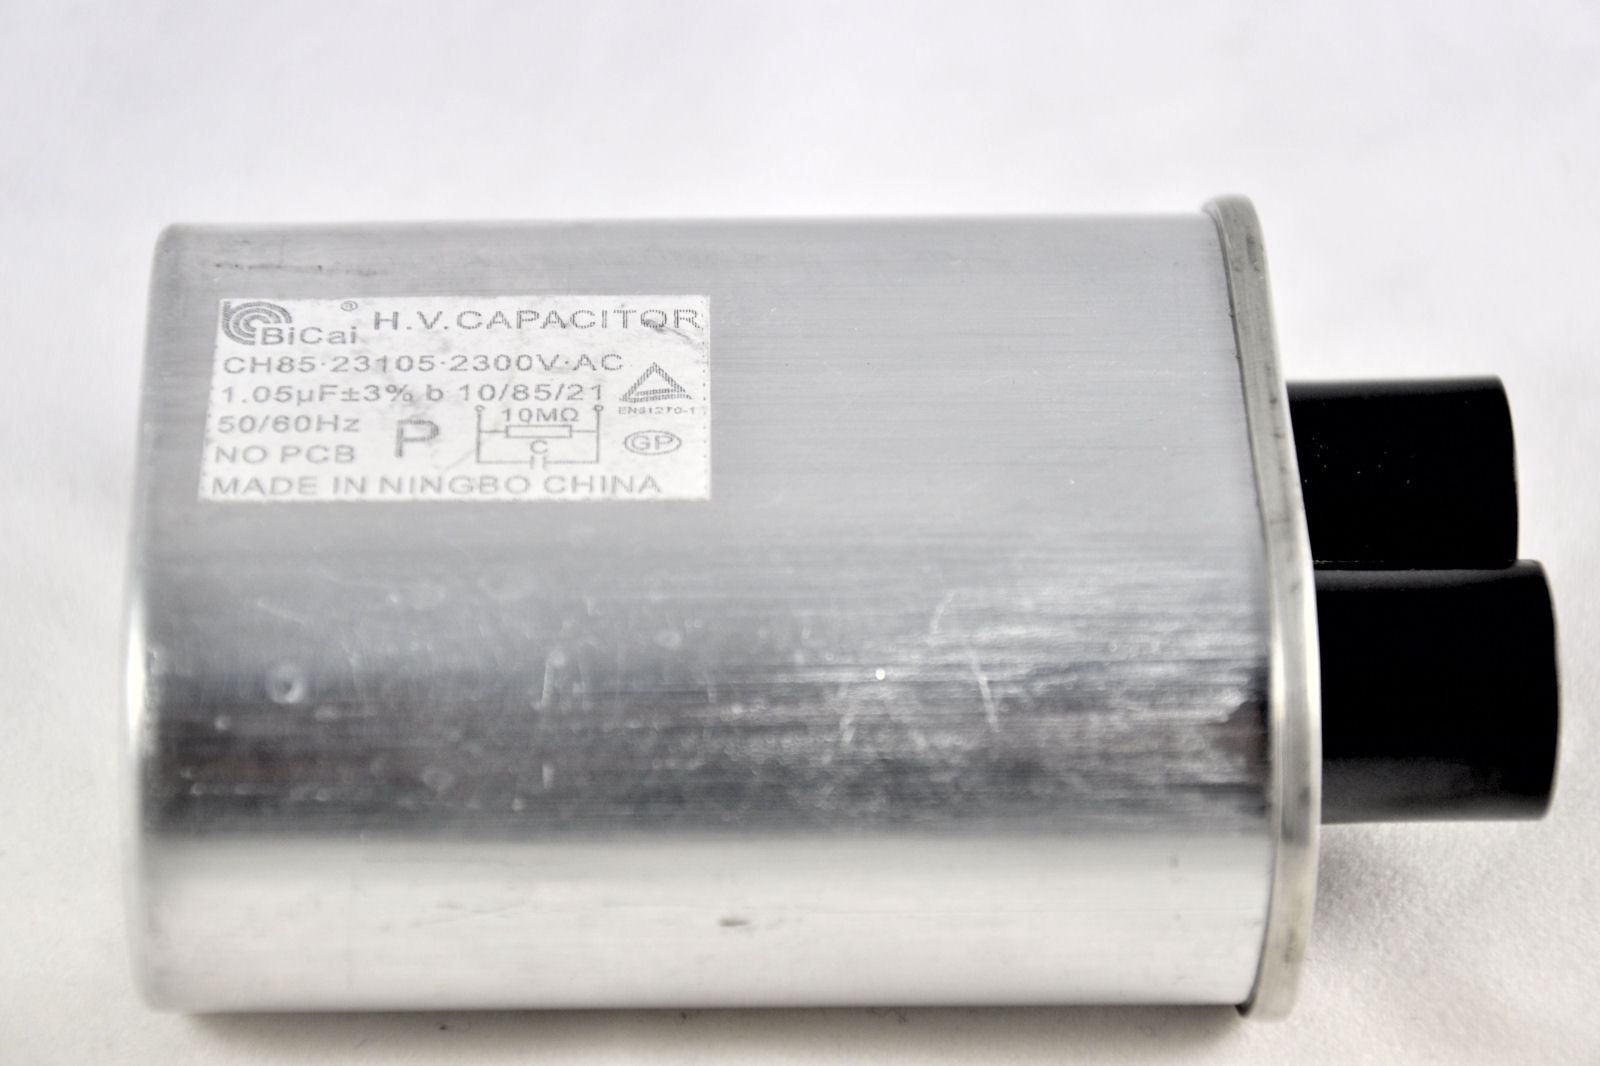 Sharp commercial microwave HV capacitor [ASW.F368442]